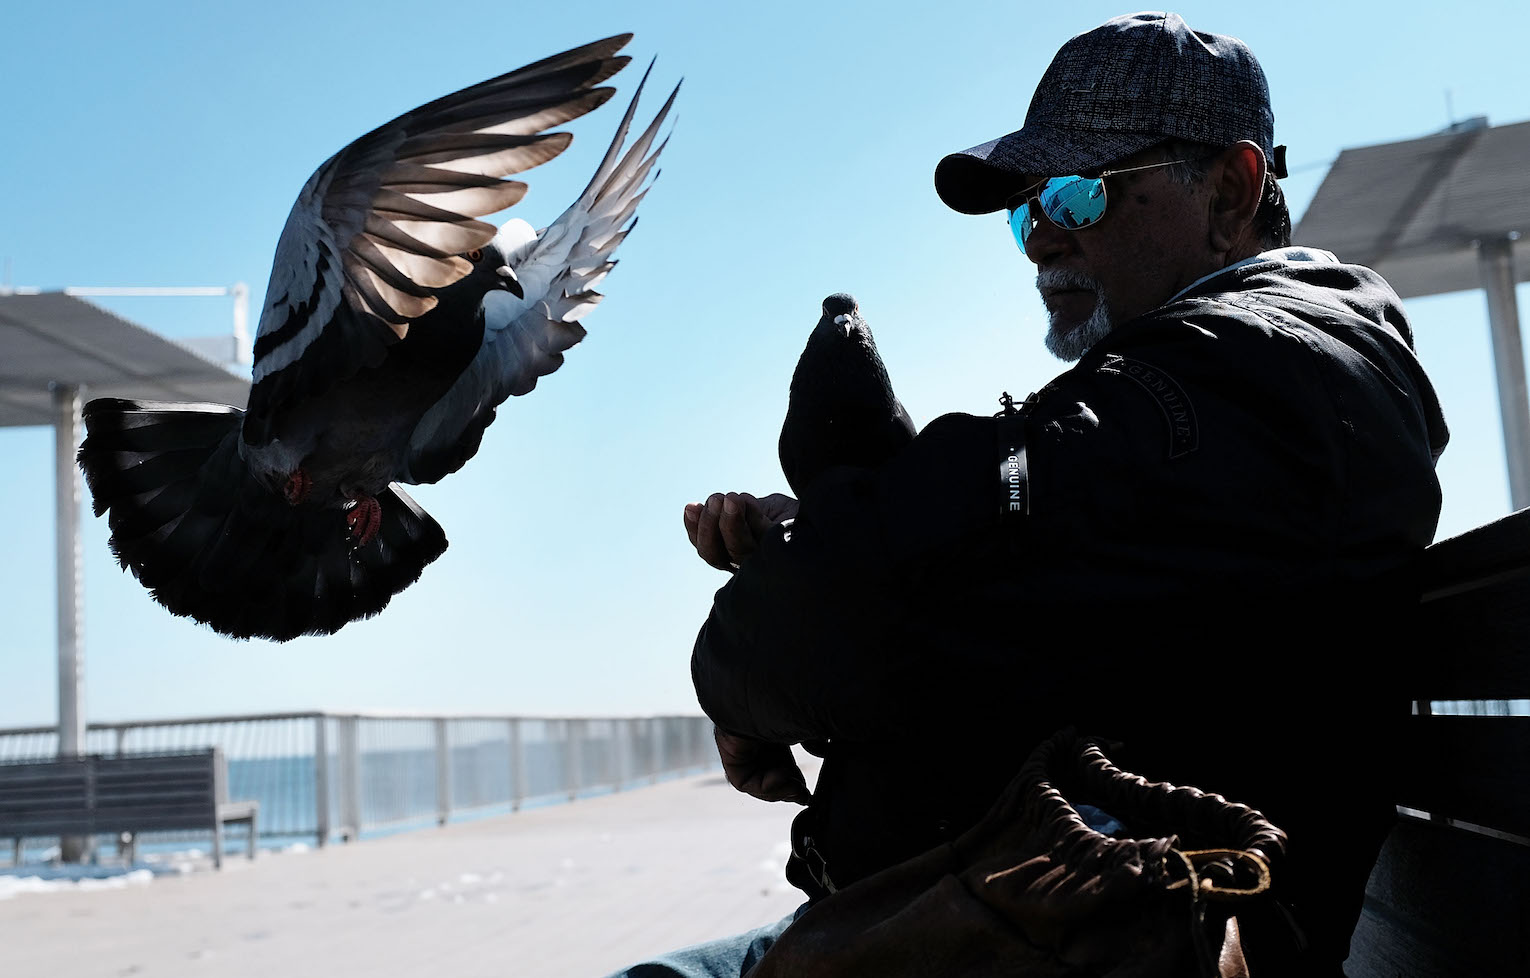 """Poggi"" feeds the pigeons along the Coney Island boardwalk on a spring afternoon on March 23, in New York City. (Spencer Platt/Getty Images)"